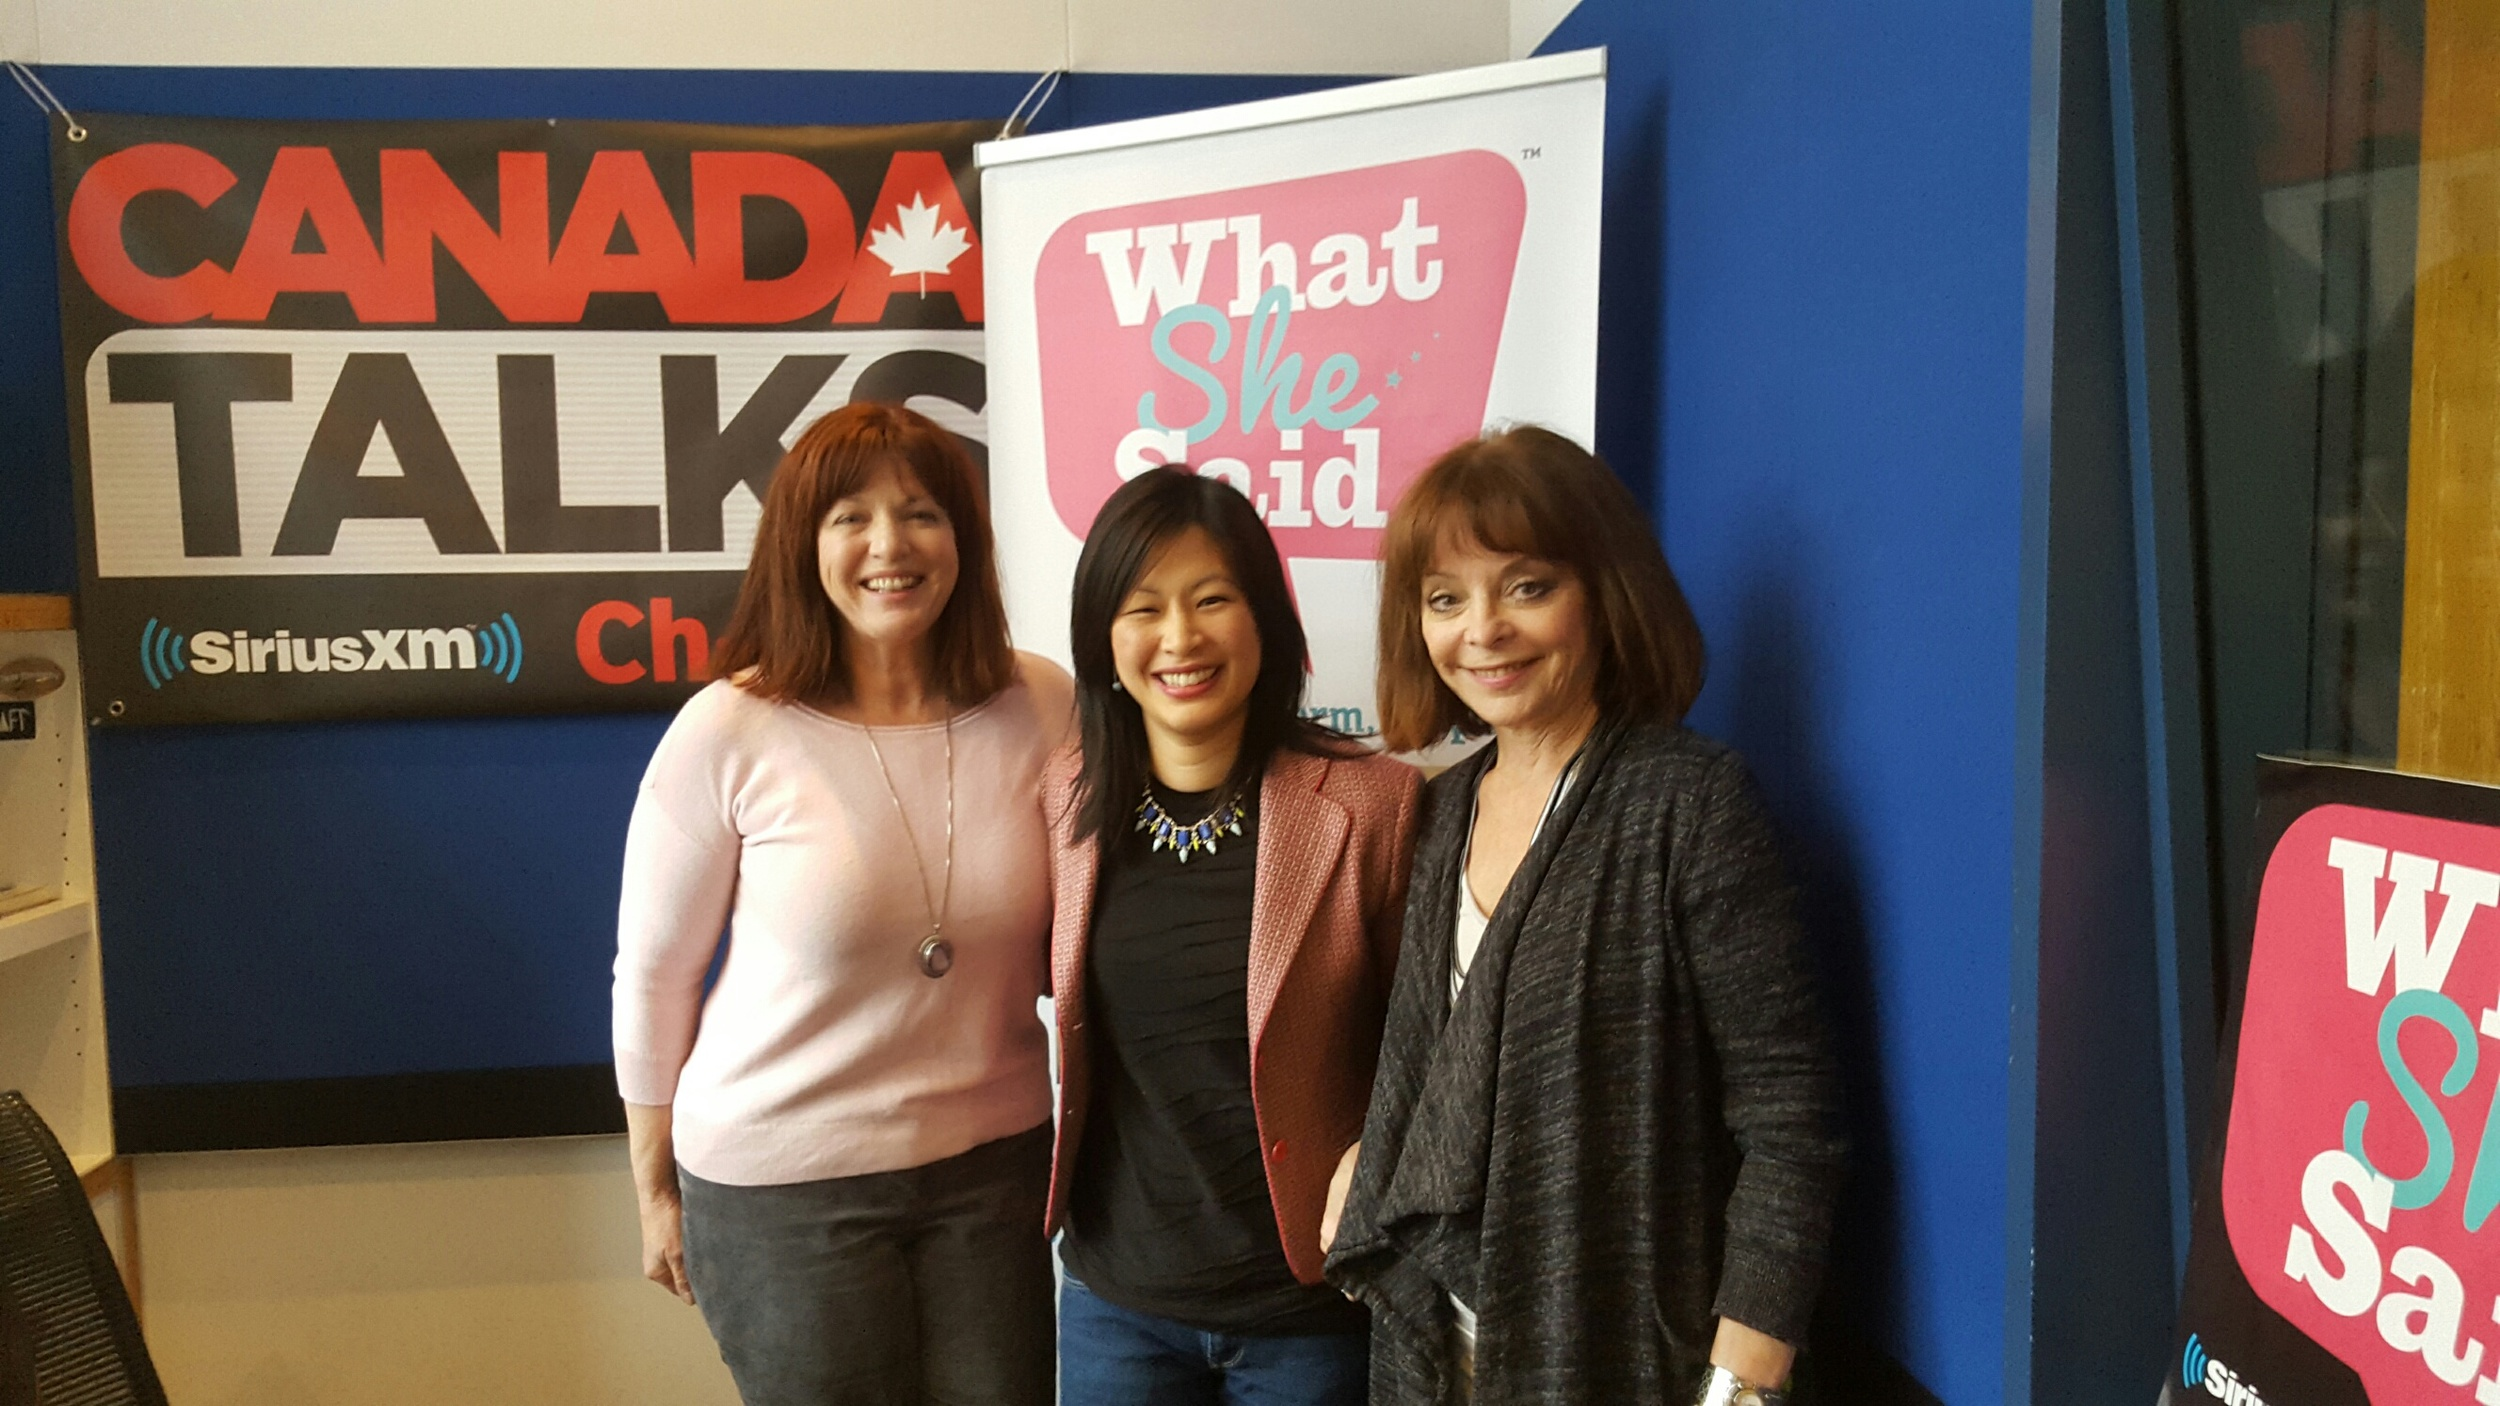 Eva Wong, Cofounder of Borrowell, guest appearance on Sirius XM